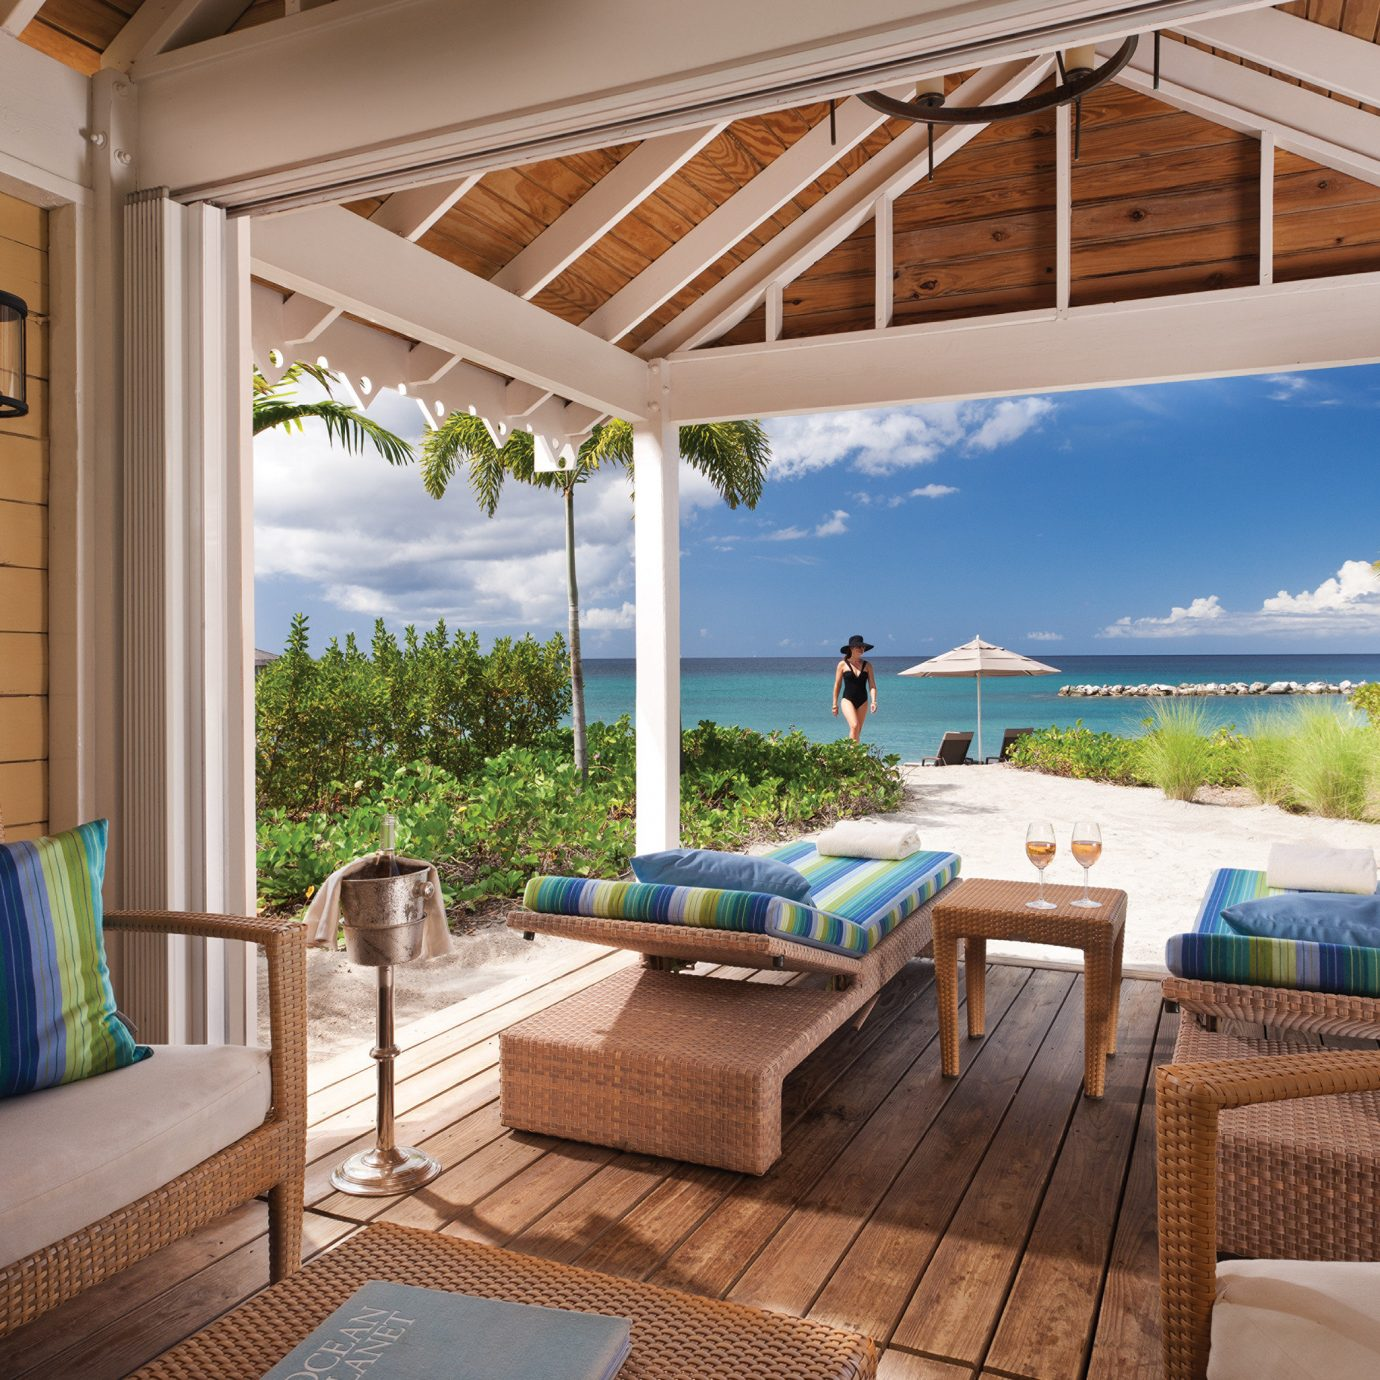 Hip Hotels Living Lounge Luxury Scenic views Trip Ideas indoor property room window swimming pool estate Villa real estate cottage vacation home Resort backyard interior design outdoor structure living room farmhouse porch furniture area overlooking